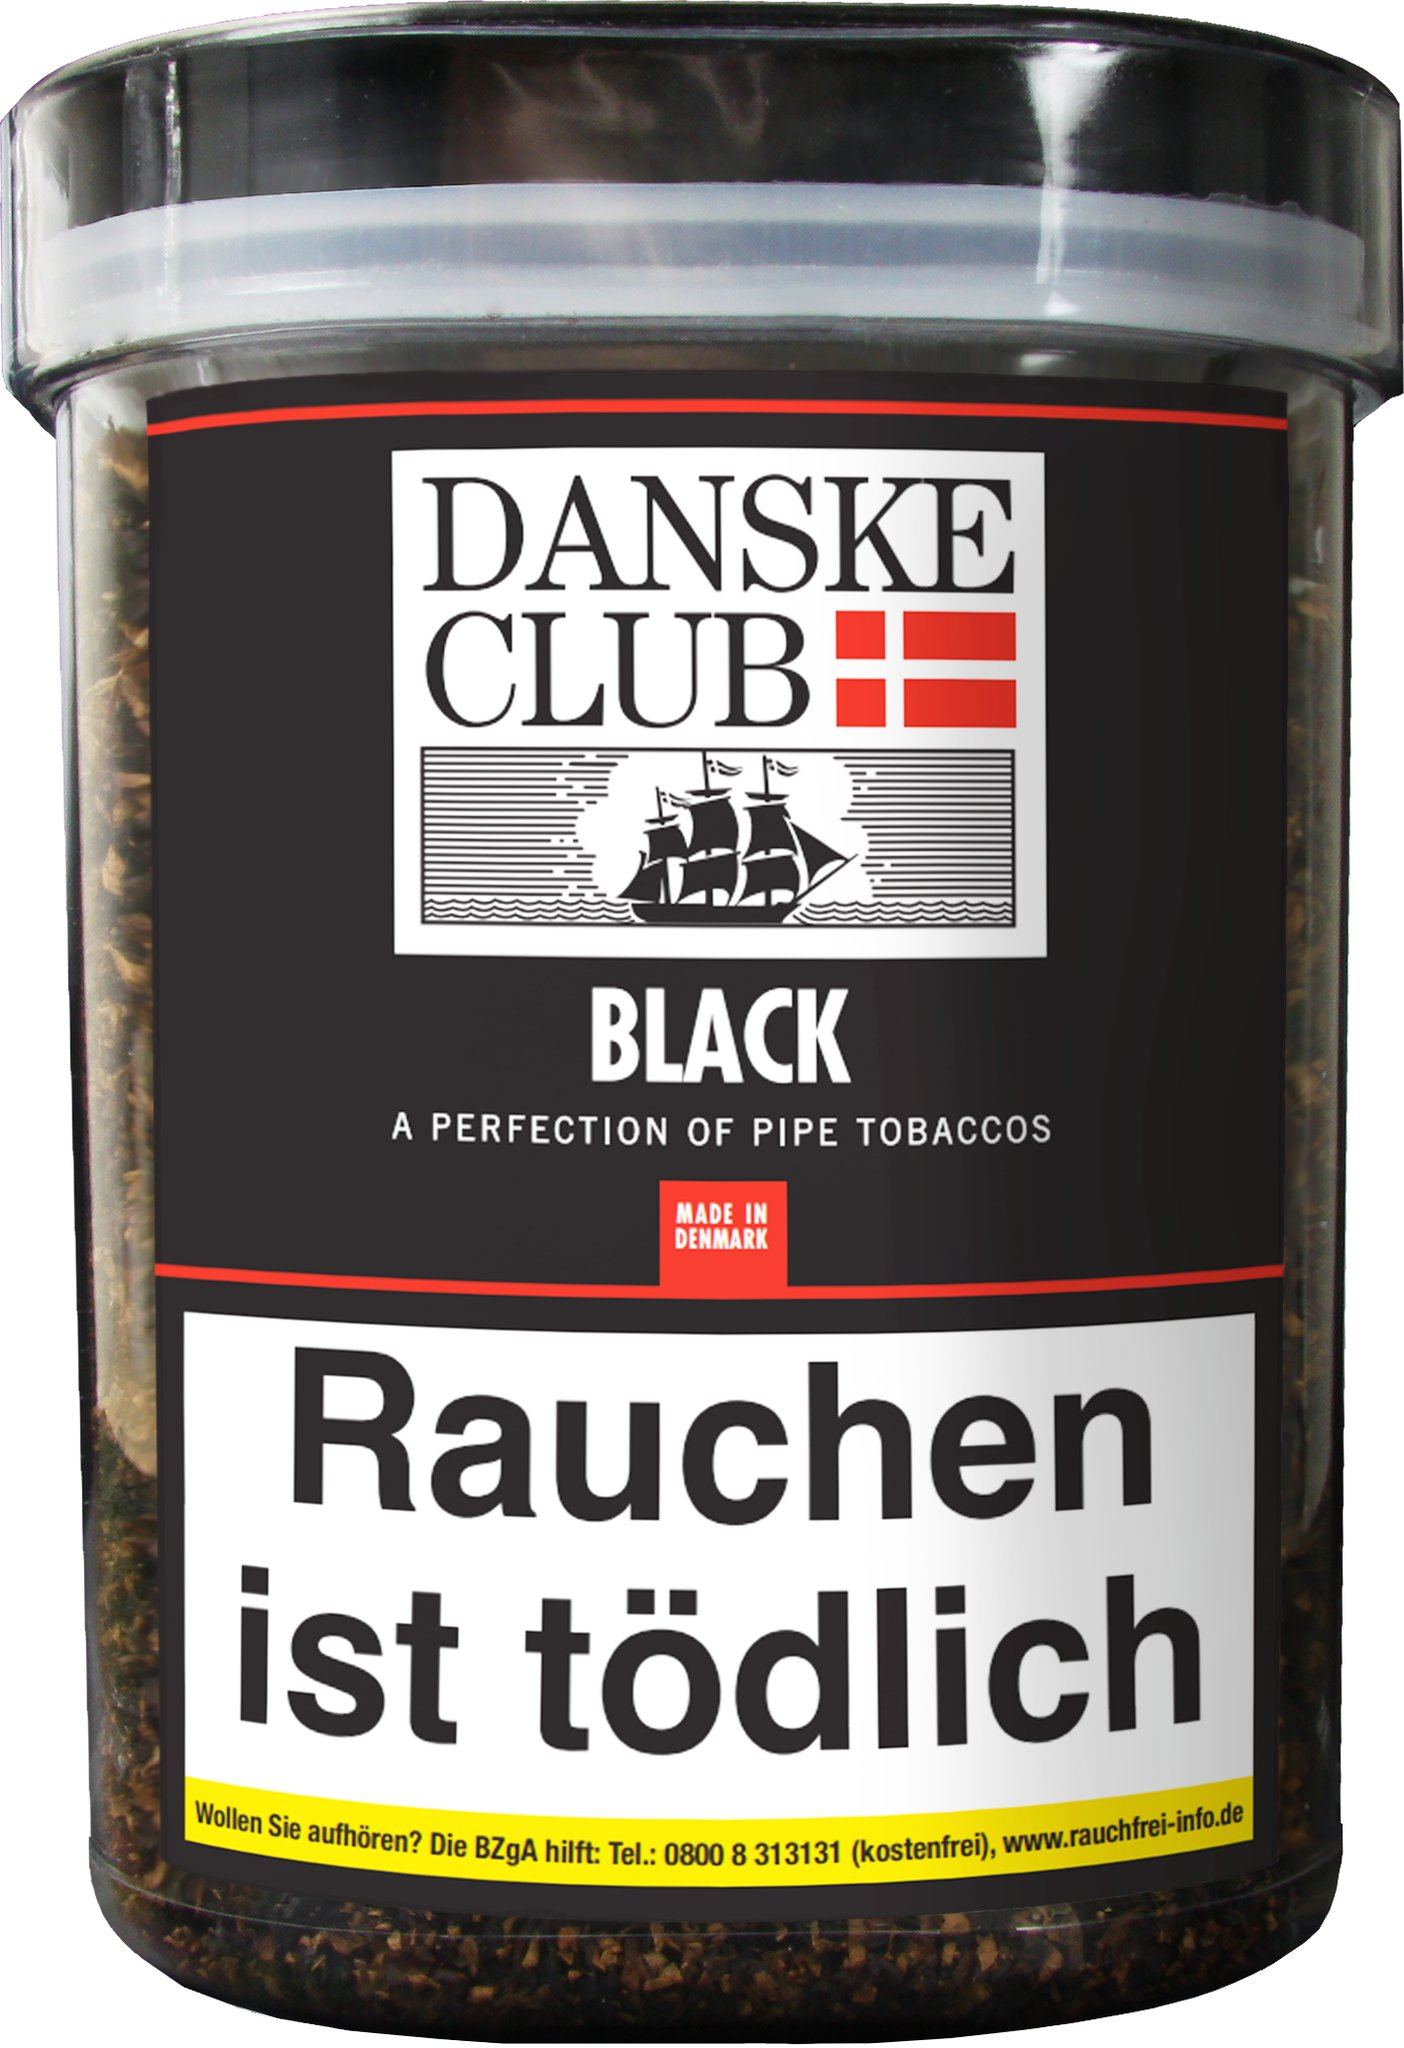 Danske Club Pfeifentabak Black (ehemals Black Luxury) 500g Kunststoffbox